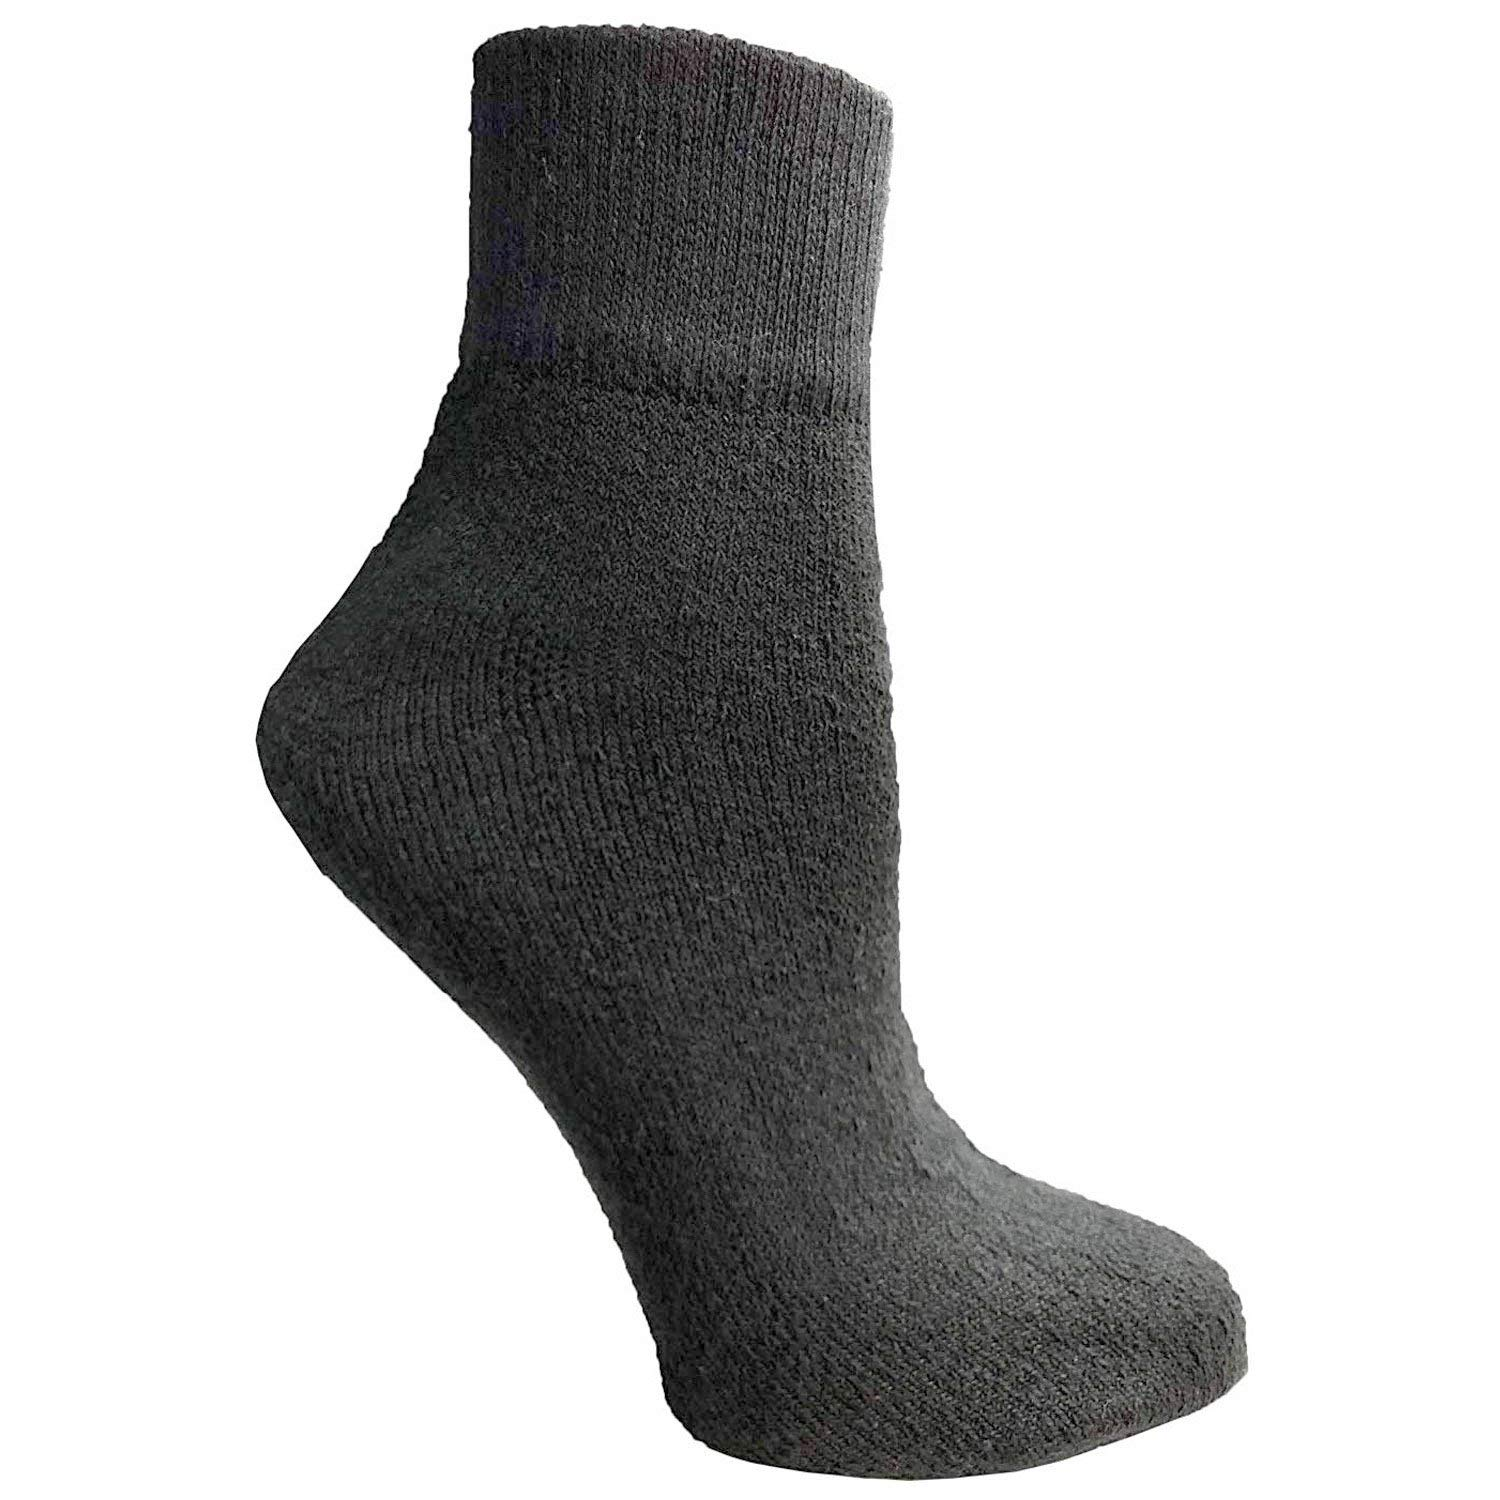 Physicians Approved Womens & Junior Girls/Boys Diabetics Crew Ankle Socks Cotton - 9-11 - Navy - 240 Pack